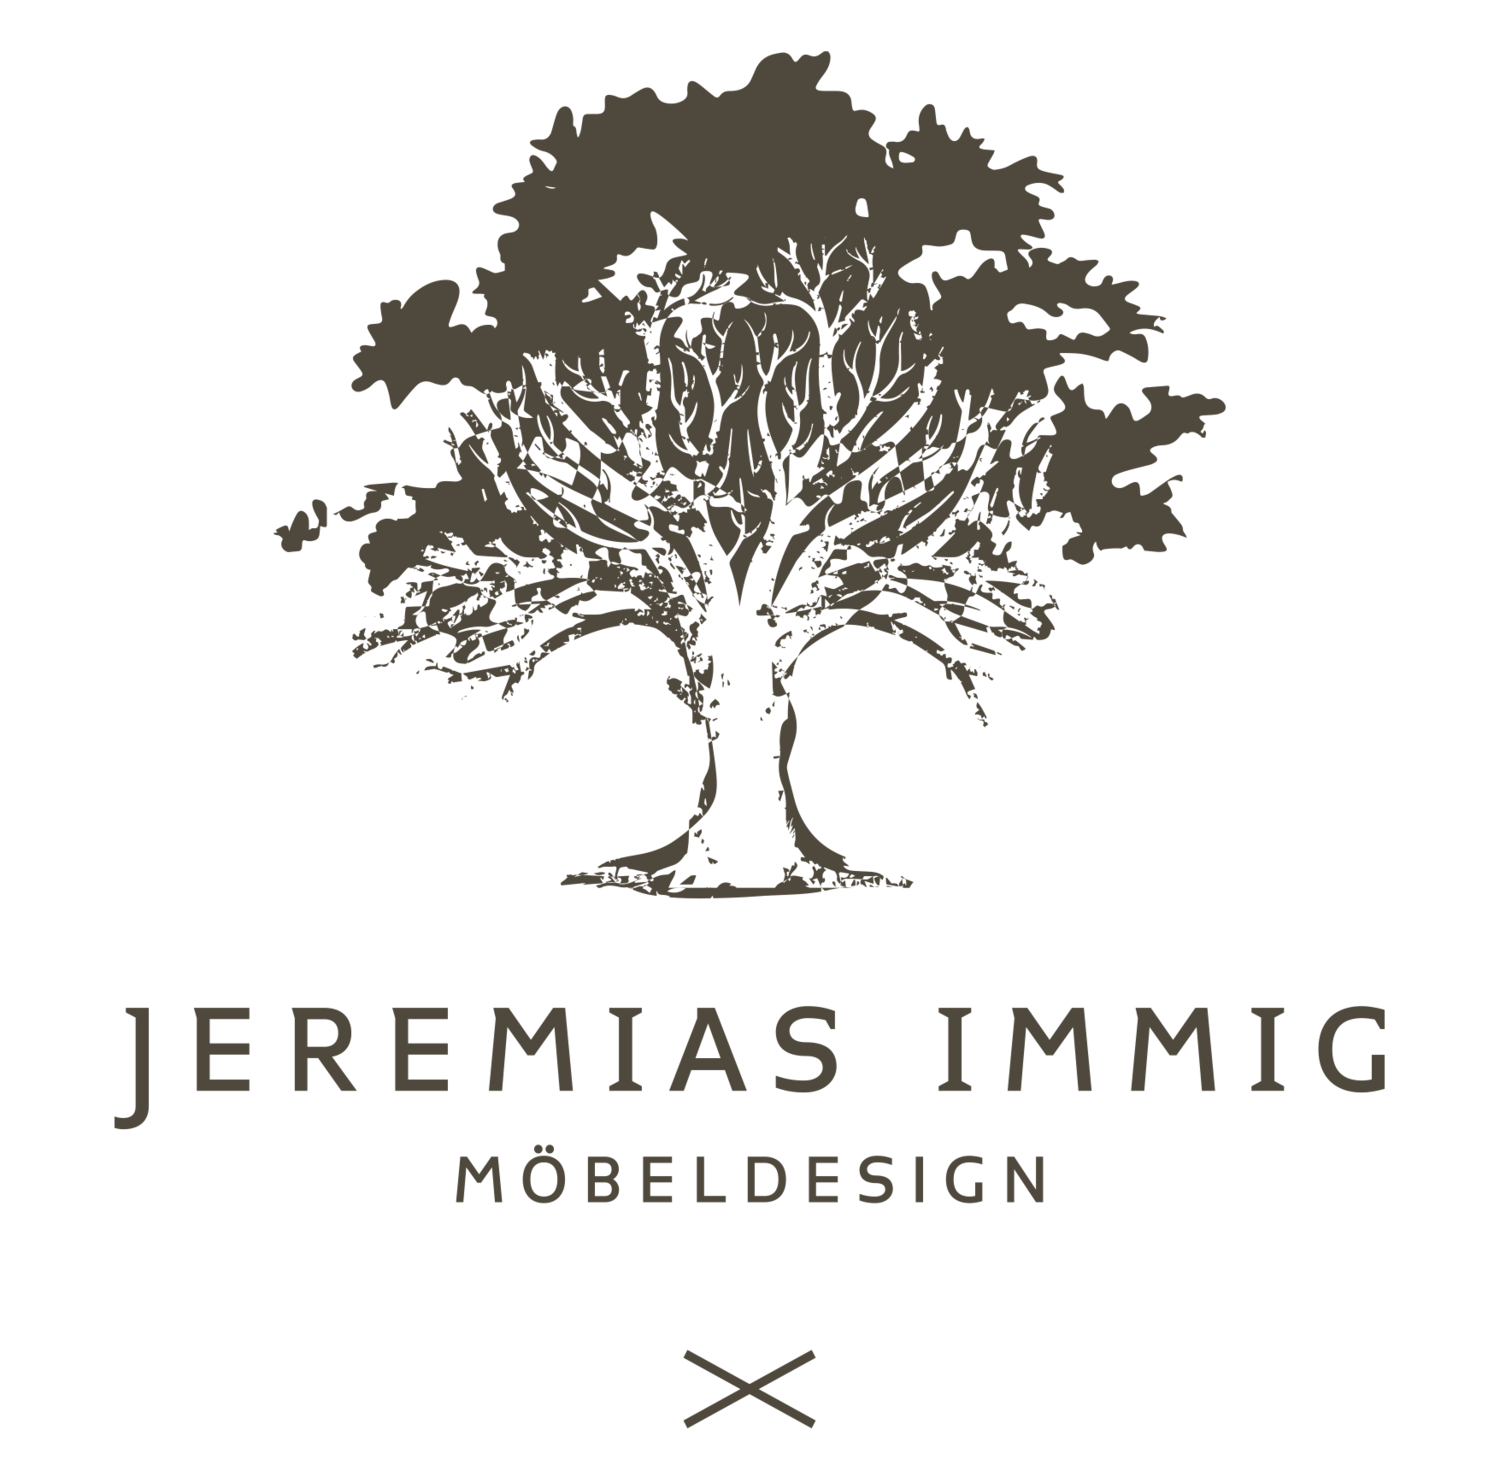 Jeremias Immig Möbeldesign